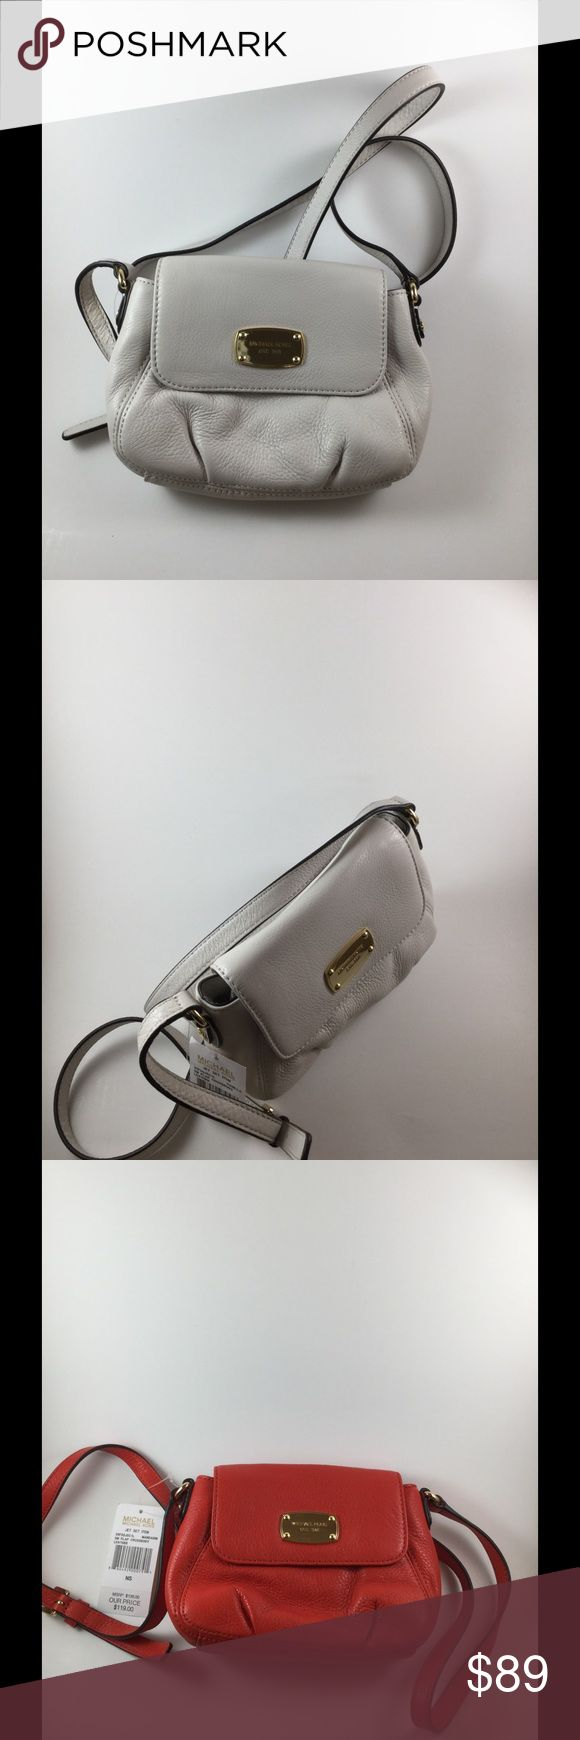 Micheal Kors Jetset Crossbody Bag Micheal Kors Jetset Small Flap Leather Crossbody Bag, NWT. Two Available , Colors Red and White Michael Kors Bags Crossbody Bags